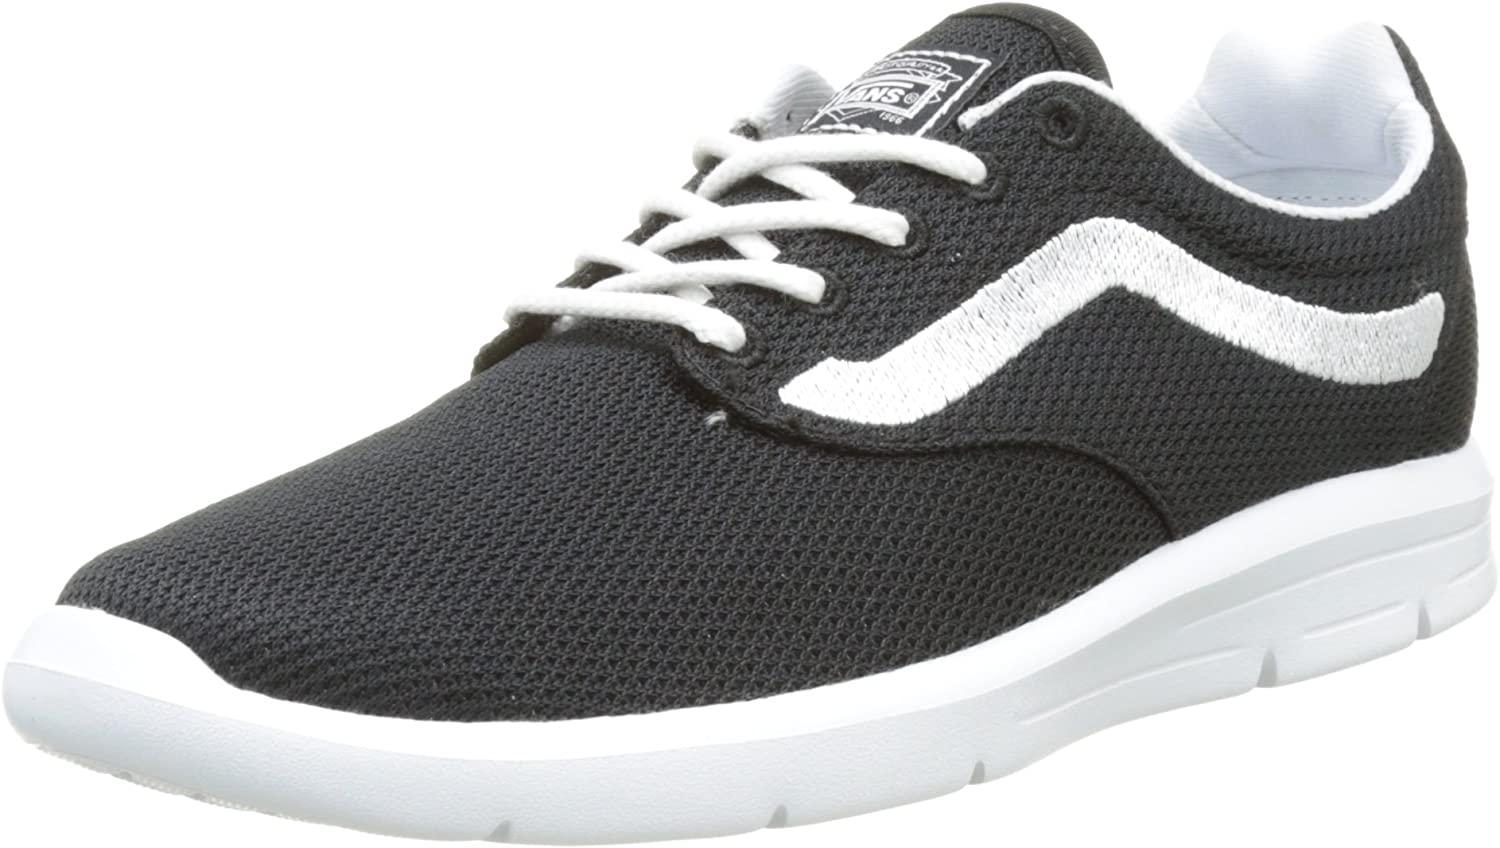 Vans Ua Iso 1.5, Unisex Adults' Low-Top Sneakers